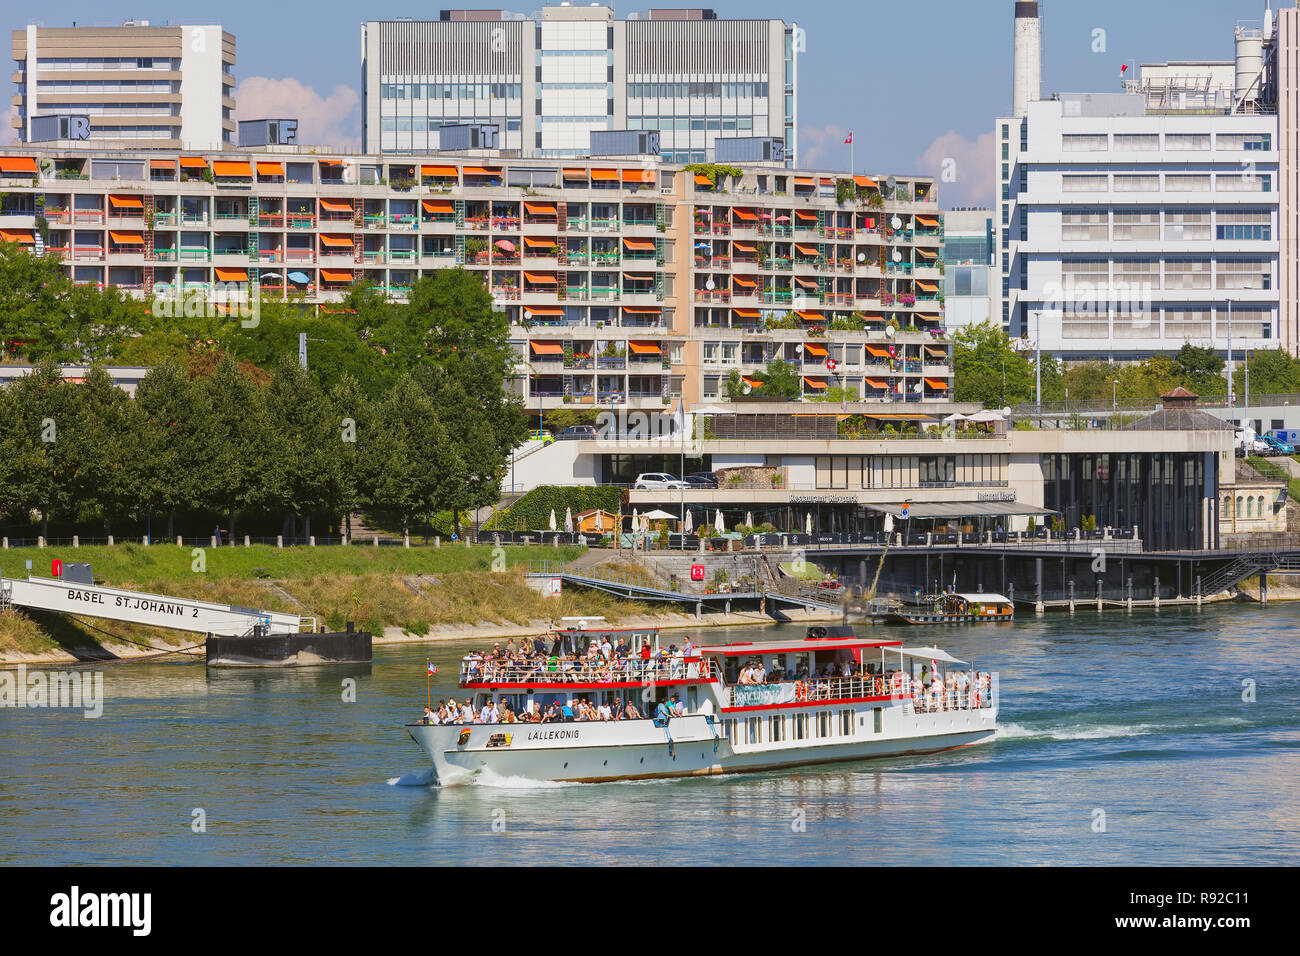 Buildings of  the city of Basel along the Rhine river, the Lallekonig boat with passengers on board passing Stock Photo